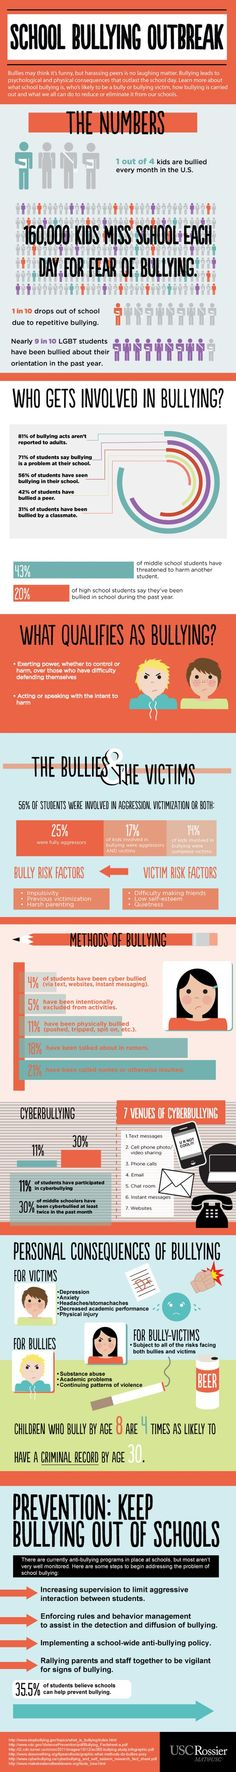 Bullying infographic: